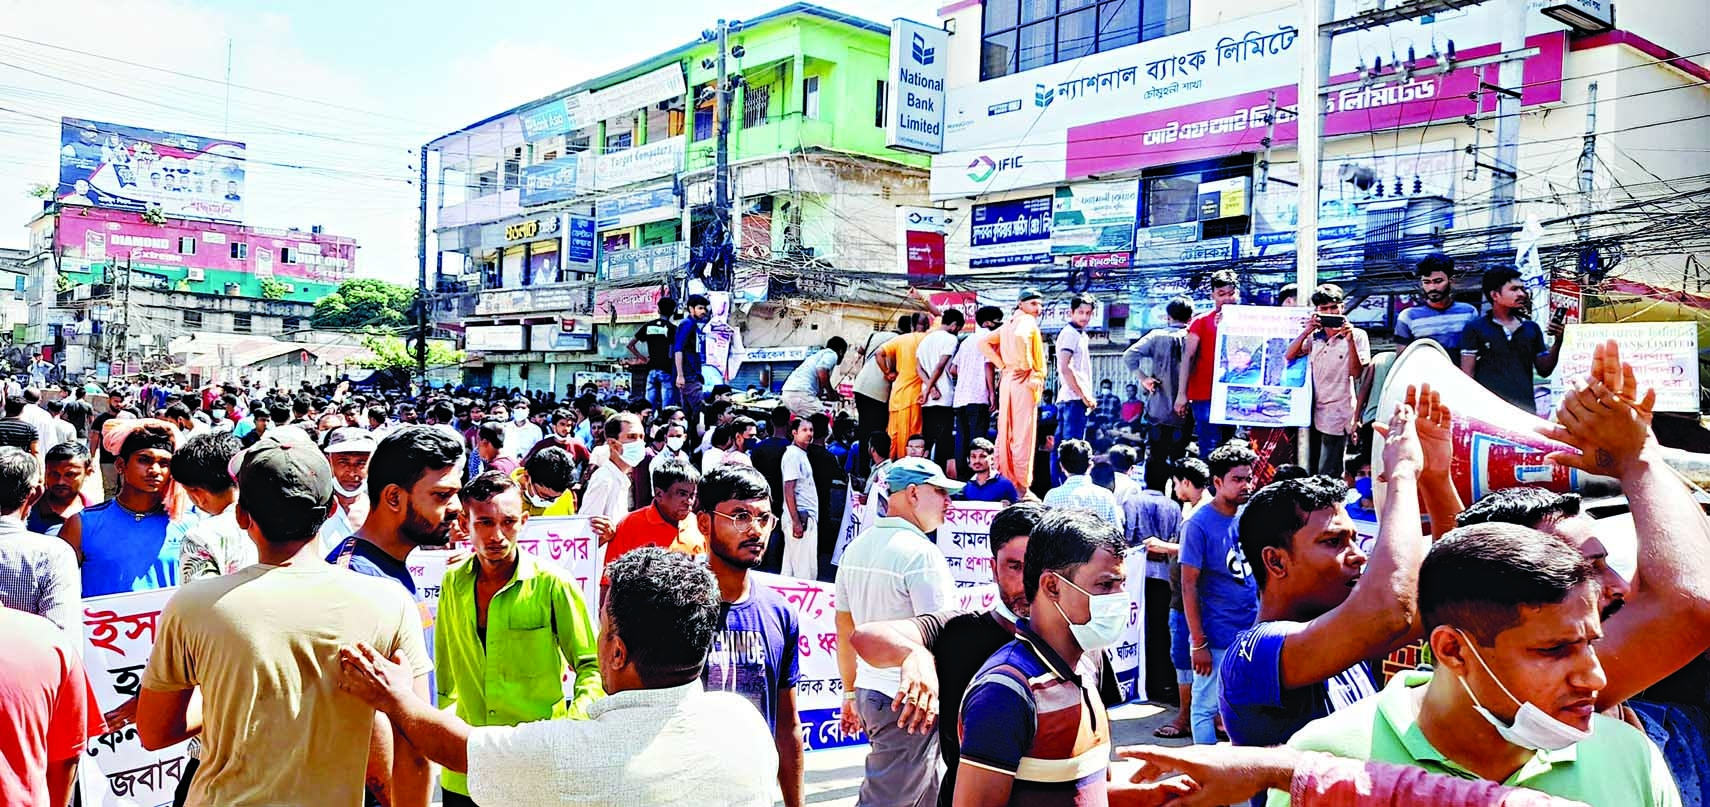 Members of Hindu community bring out a procession at Chowmuhani Bazar in Begumganj upazila of Noakhali district on Saturday defying authorities' ban on meetings and public gatherings.